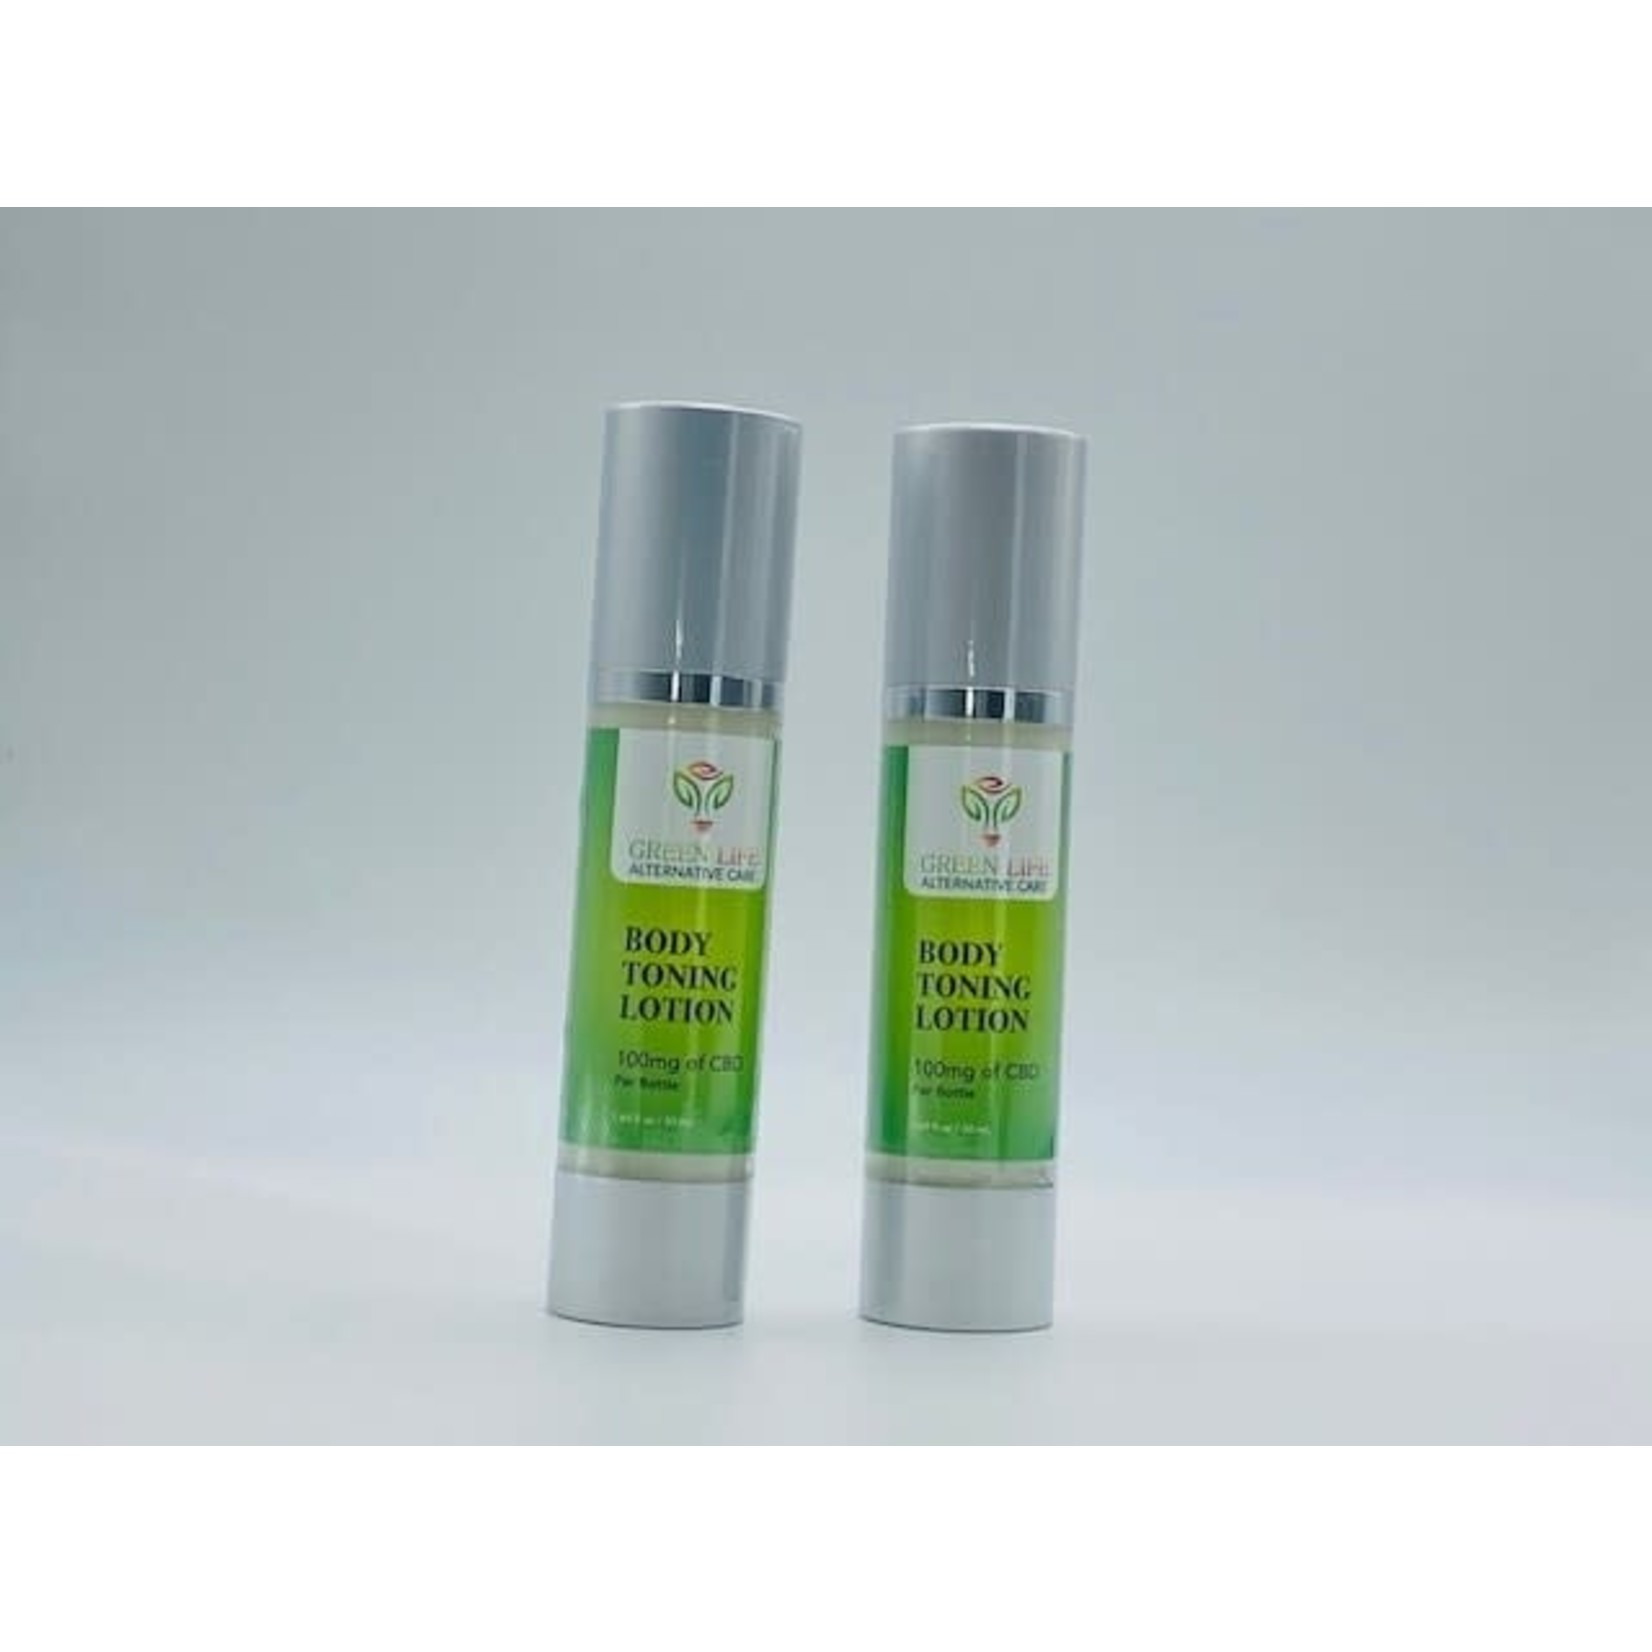 GLAC GLAC CBD Complete Body Toning Lotion 100mg